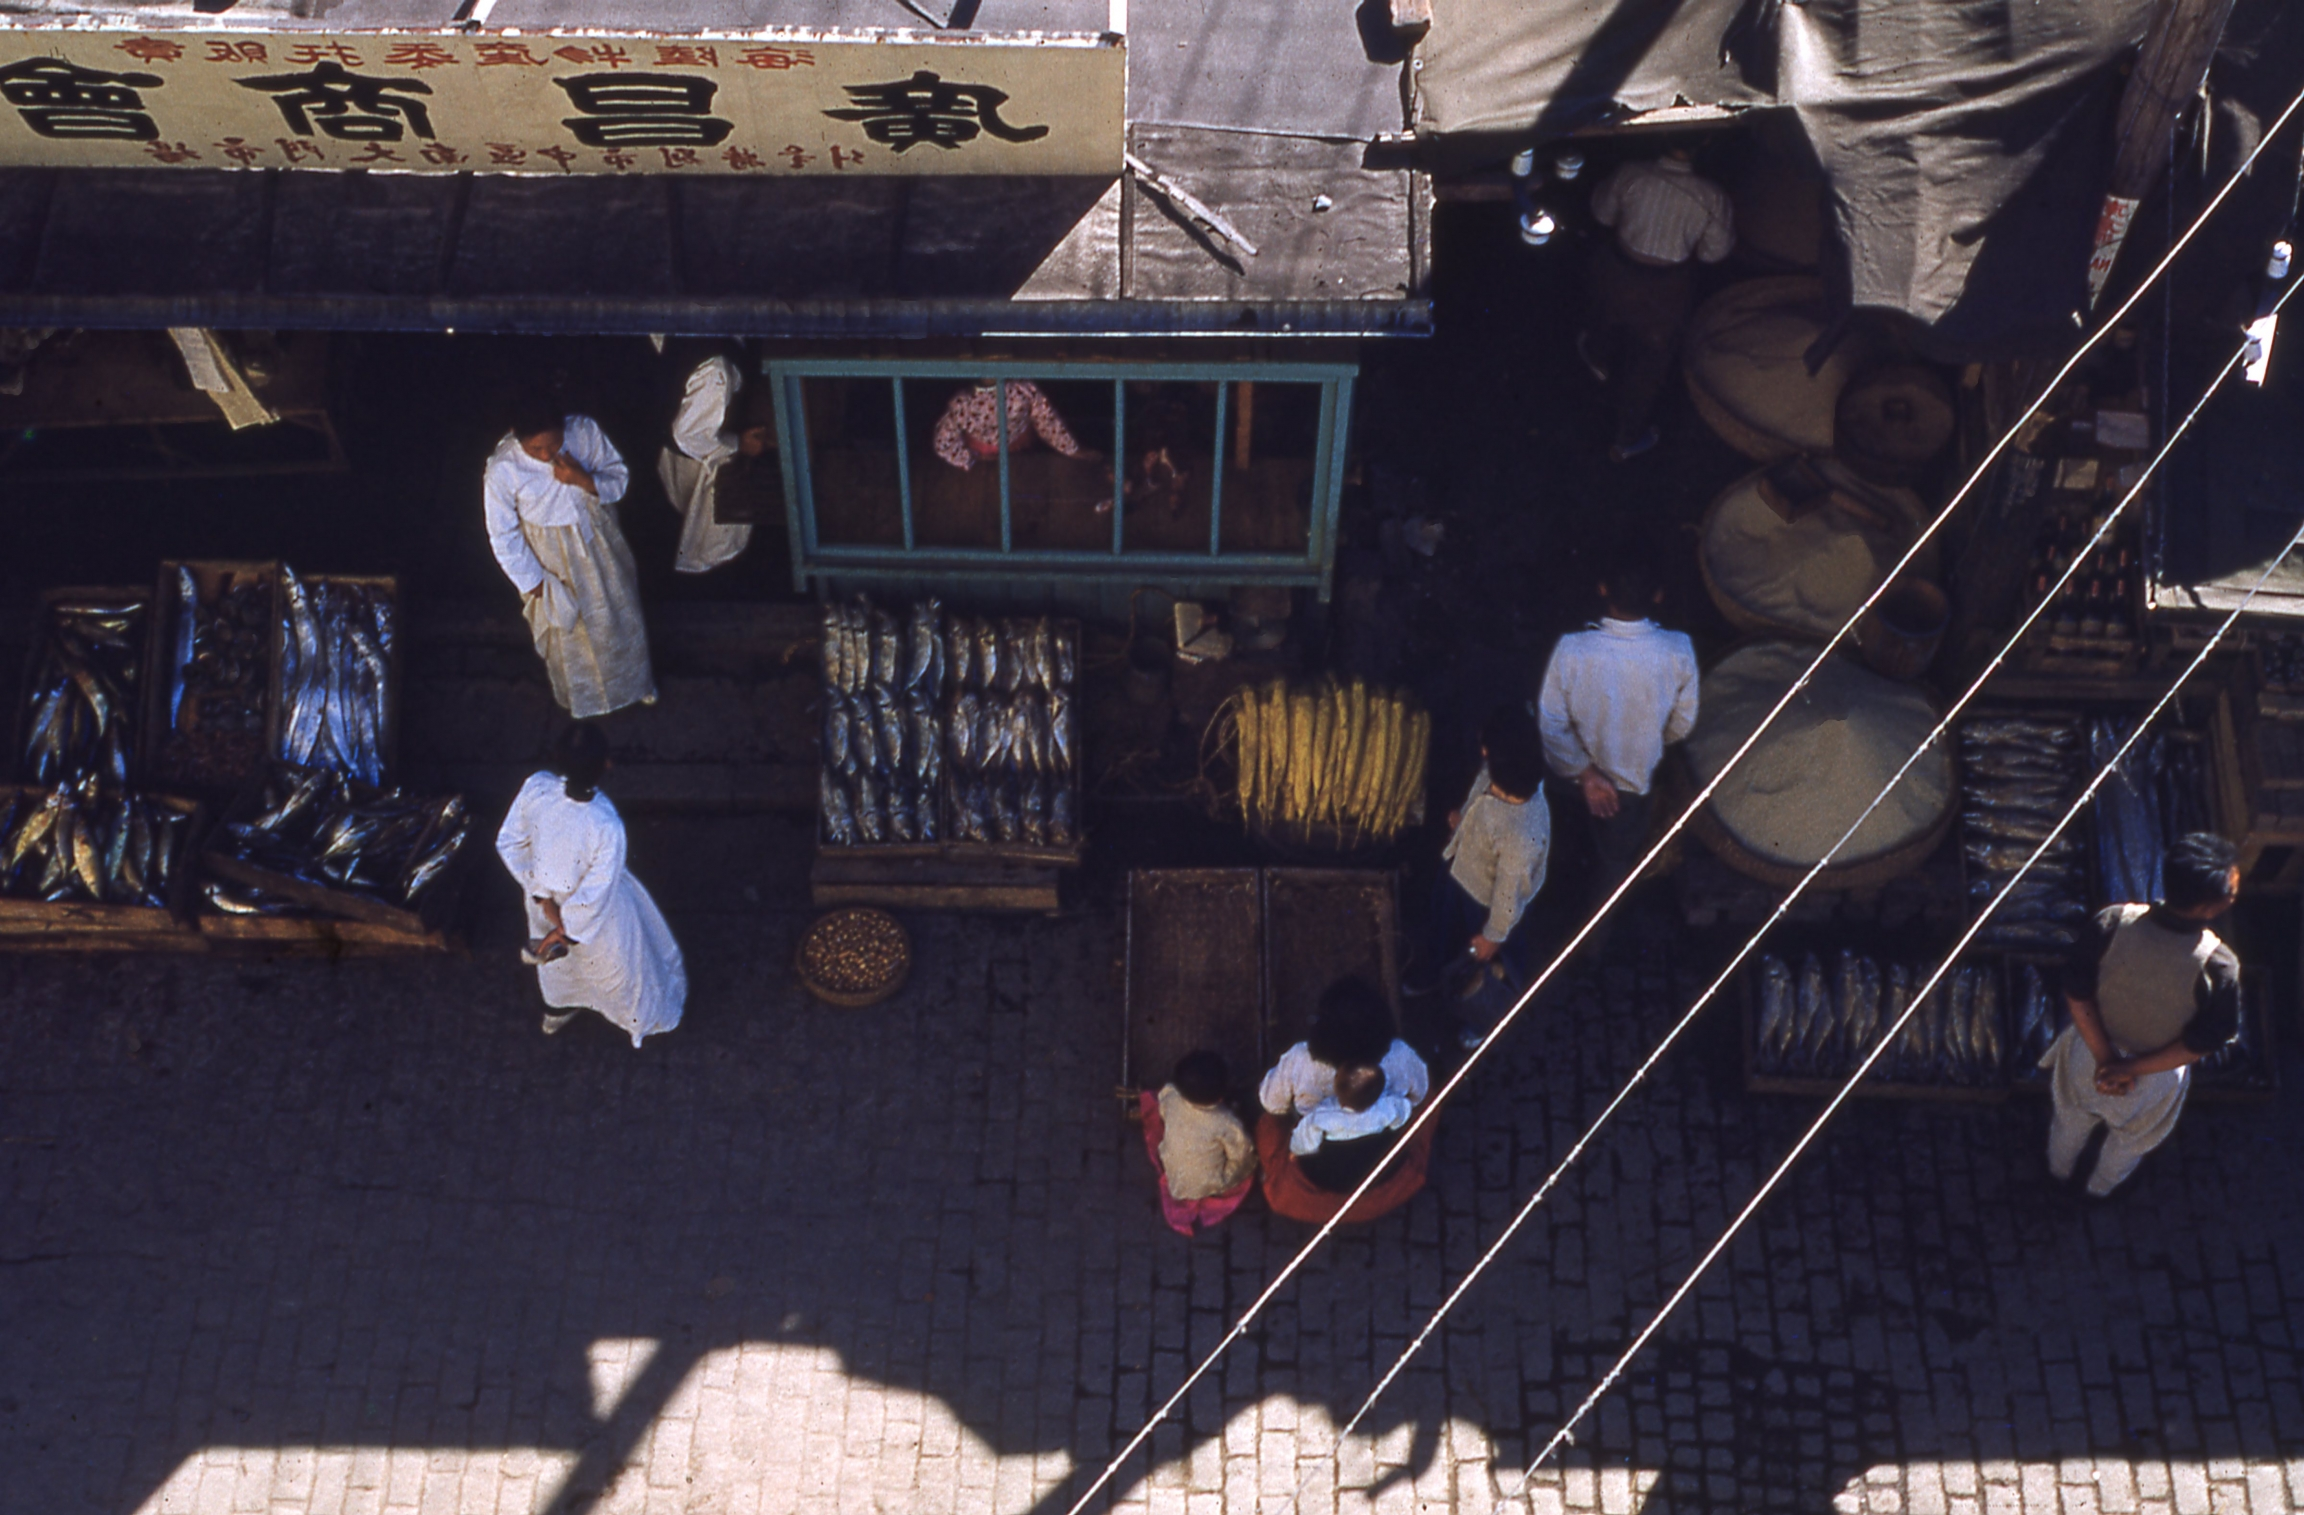 korean fish store in the 1950s